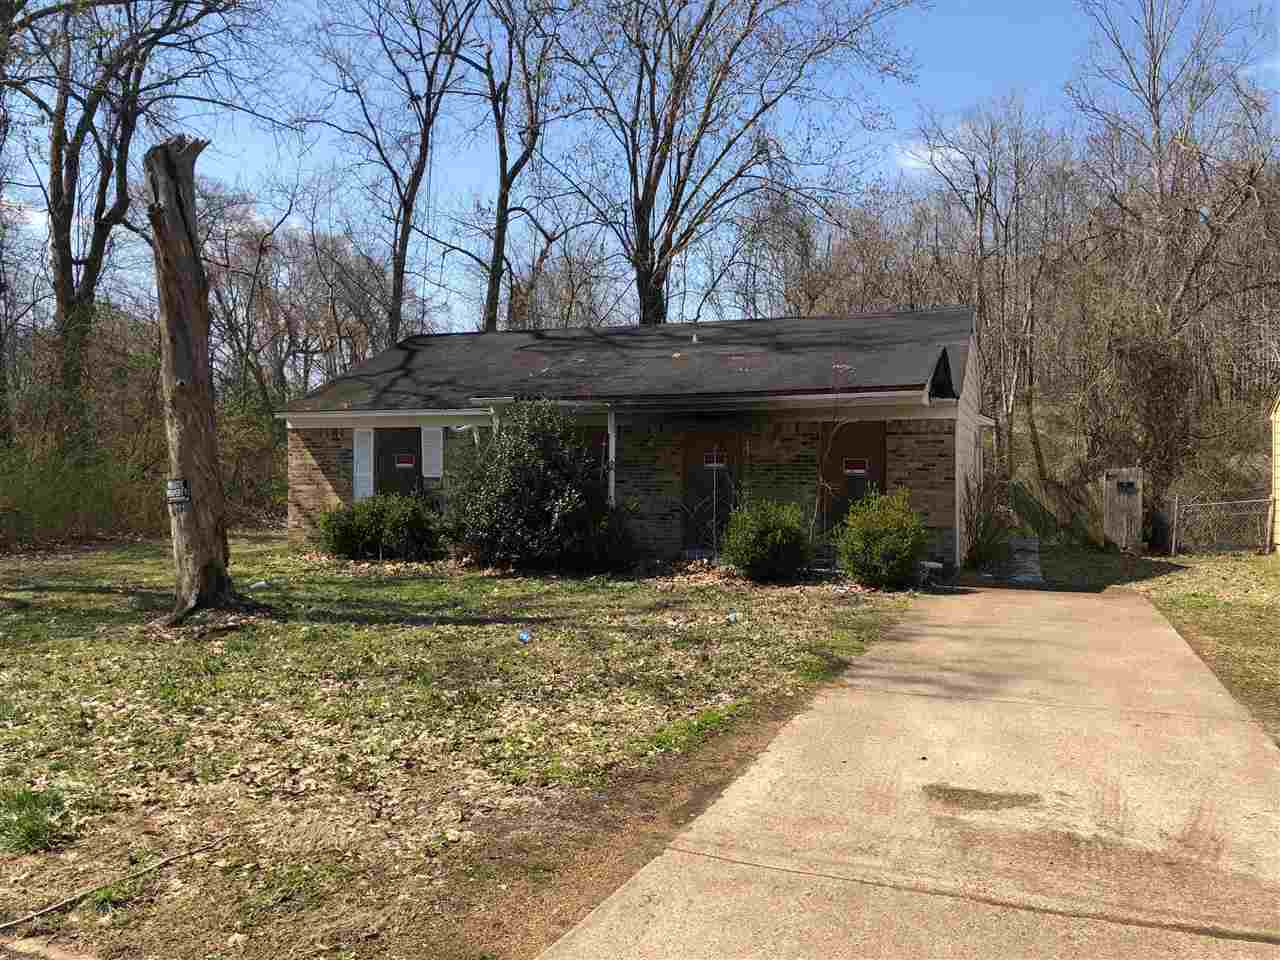 77 Currie Avenue,Jackson,Tennessee 38301,3 Bedrooms Bedrooms,1 BathroomBathrooms,Residential,77 Currie Avenue,181803